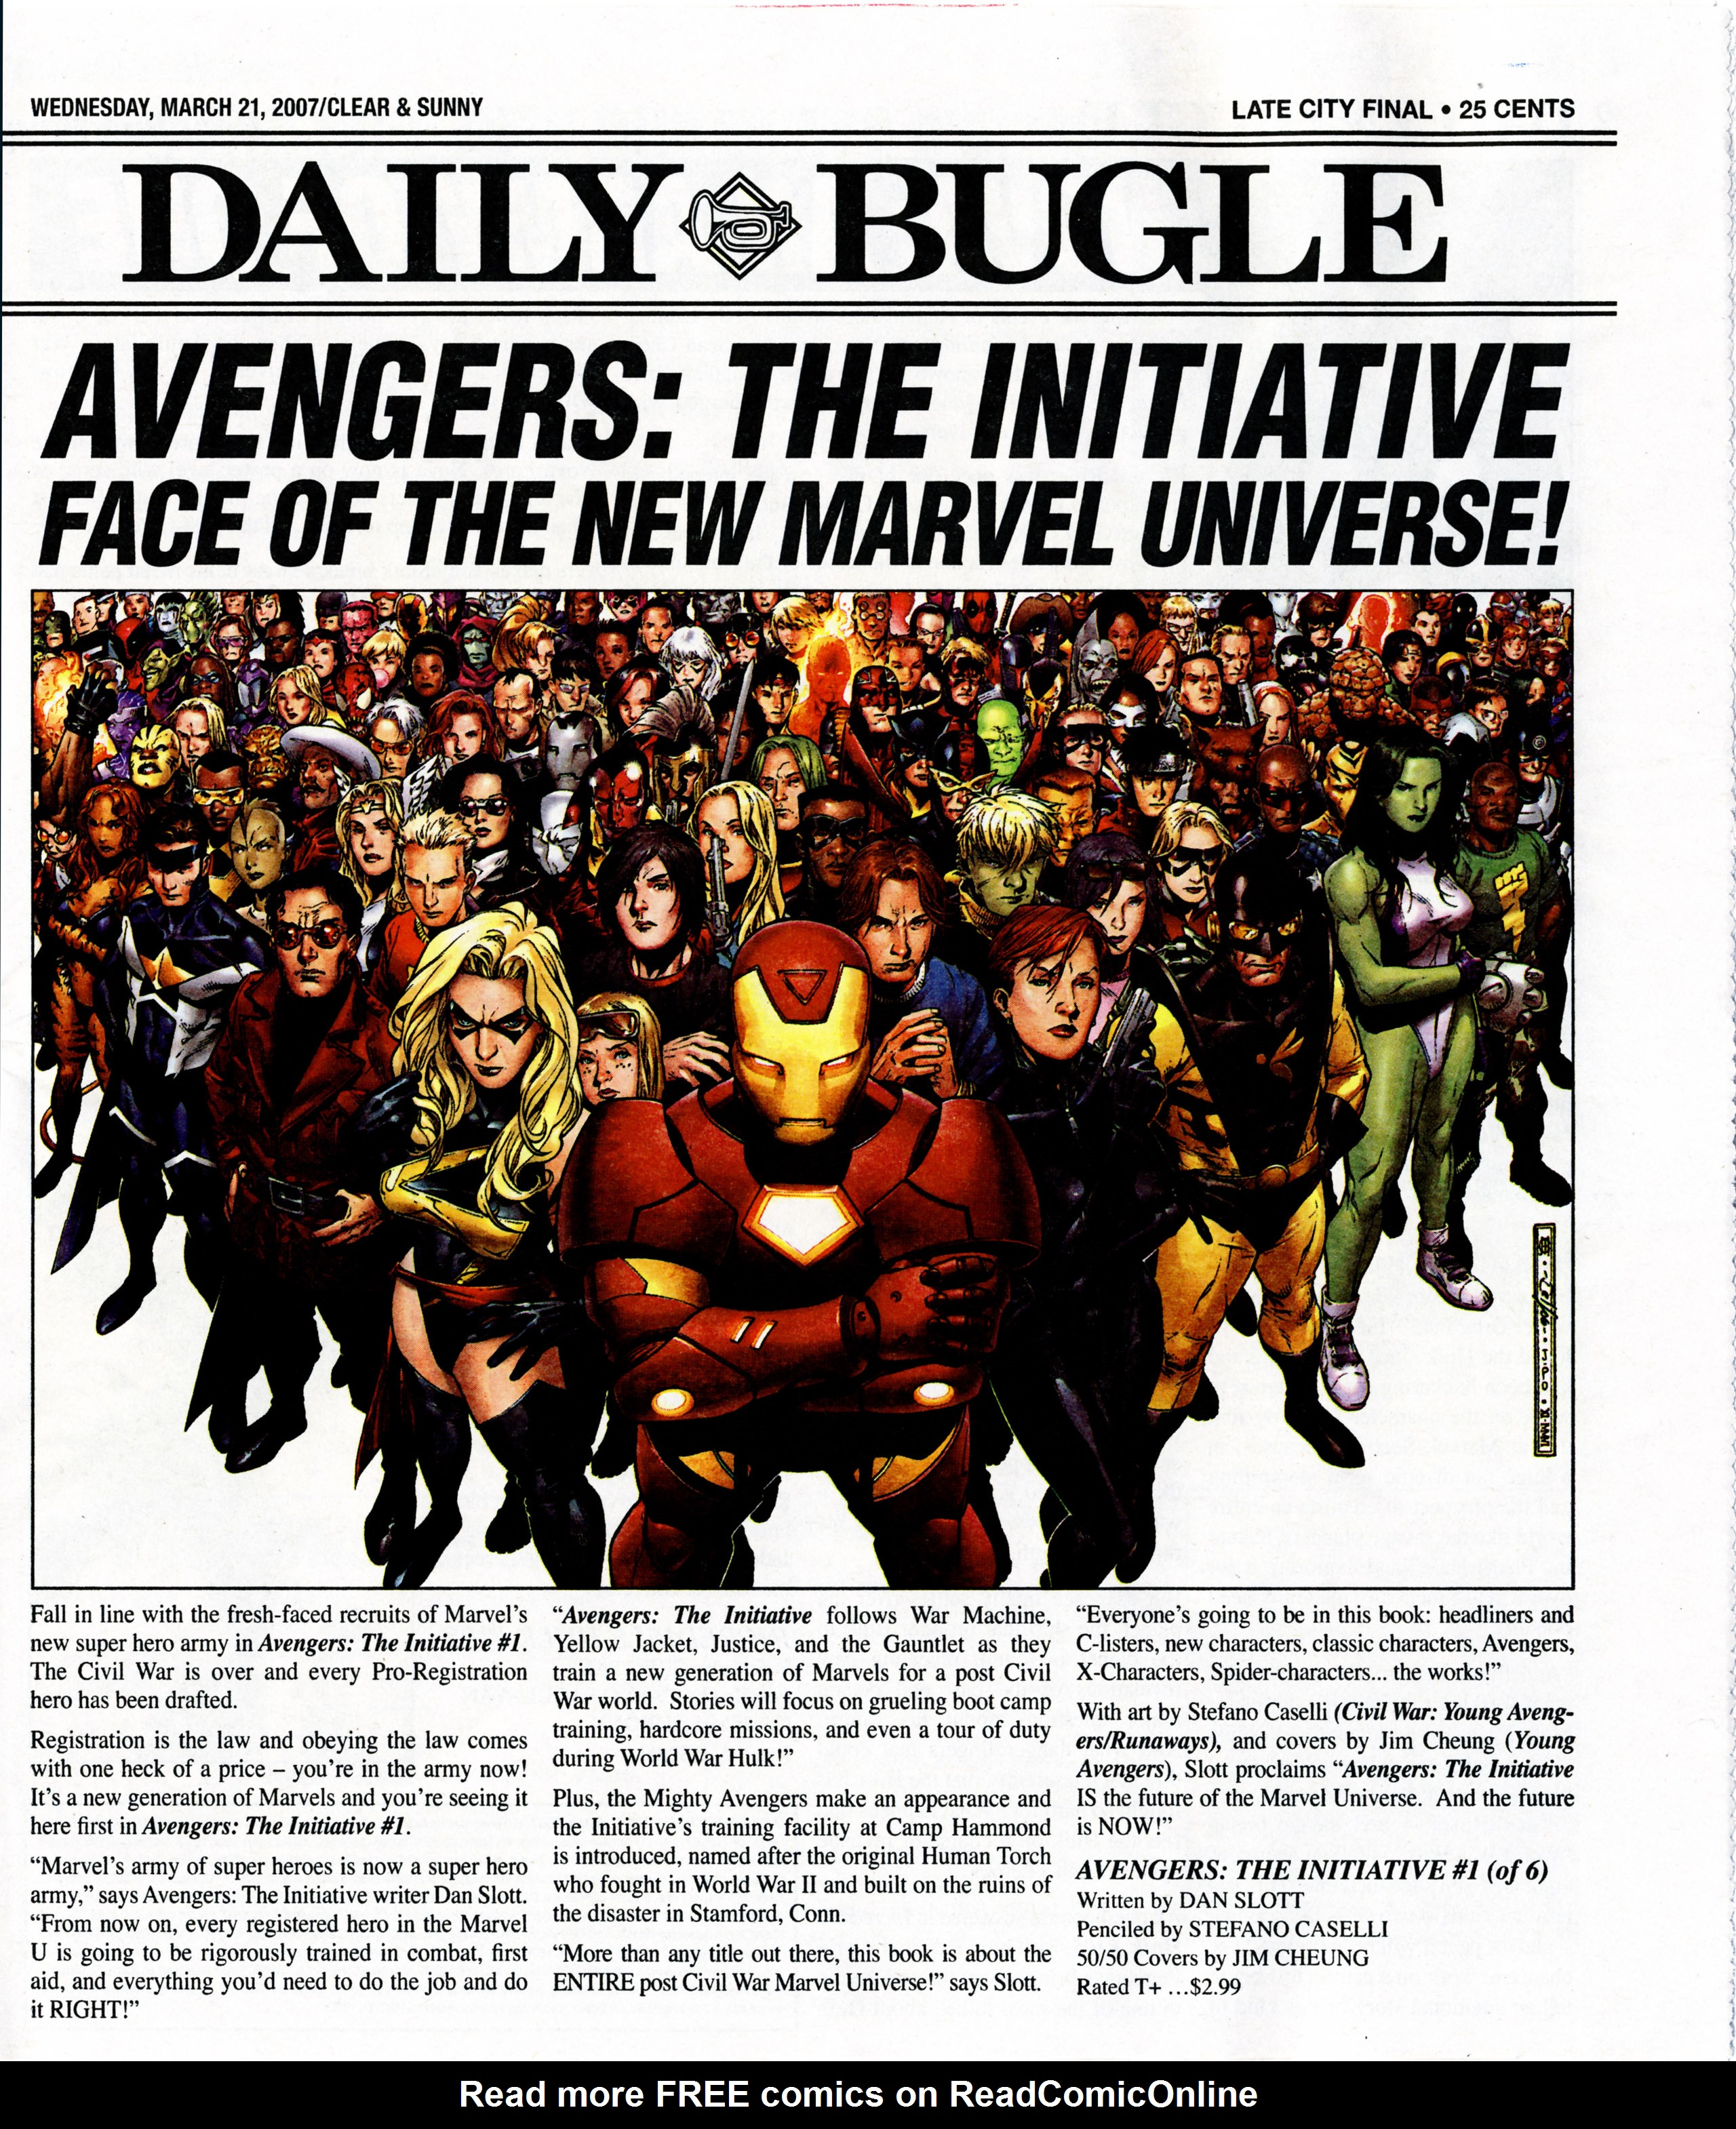 Read online Daily Bugle (2006) comic -  Issue #7 - 2